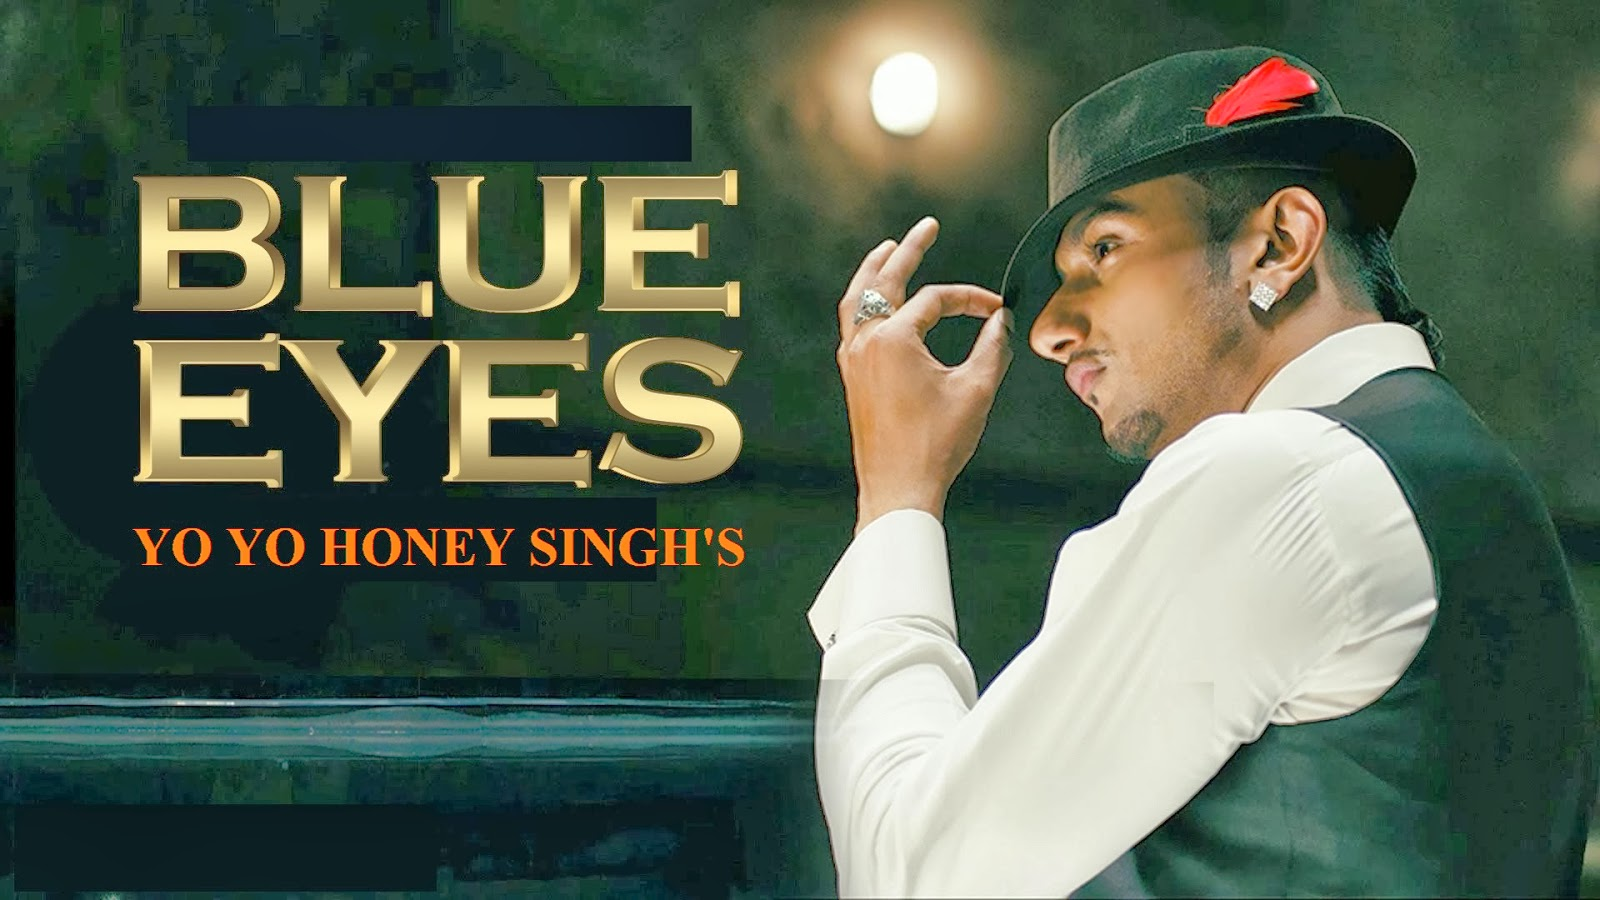 Blue eyes movie video songs free download programallabout All hd song